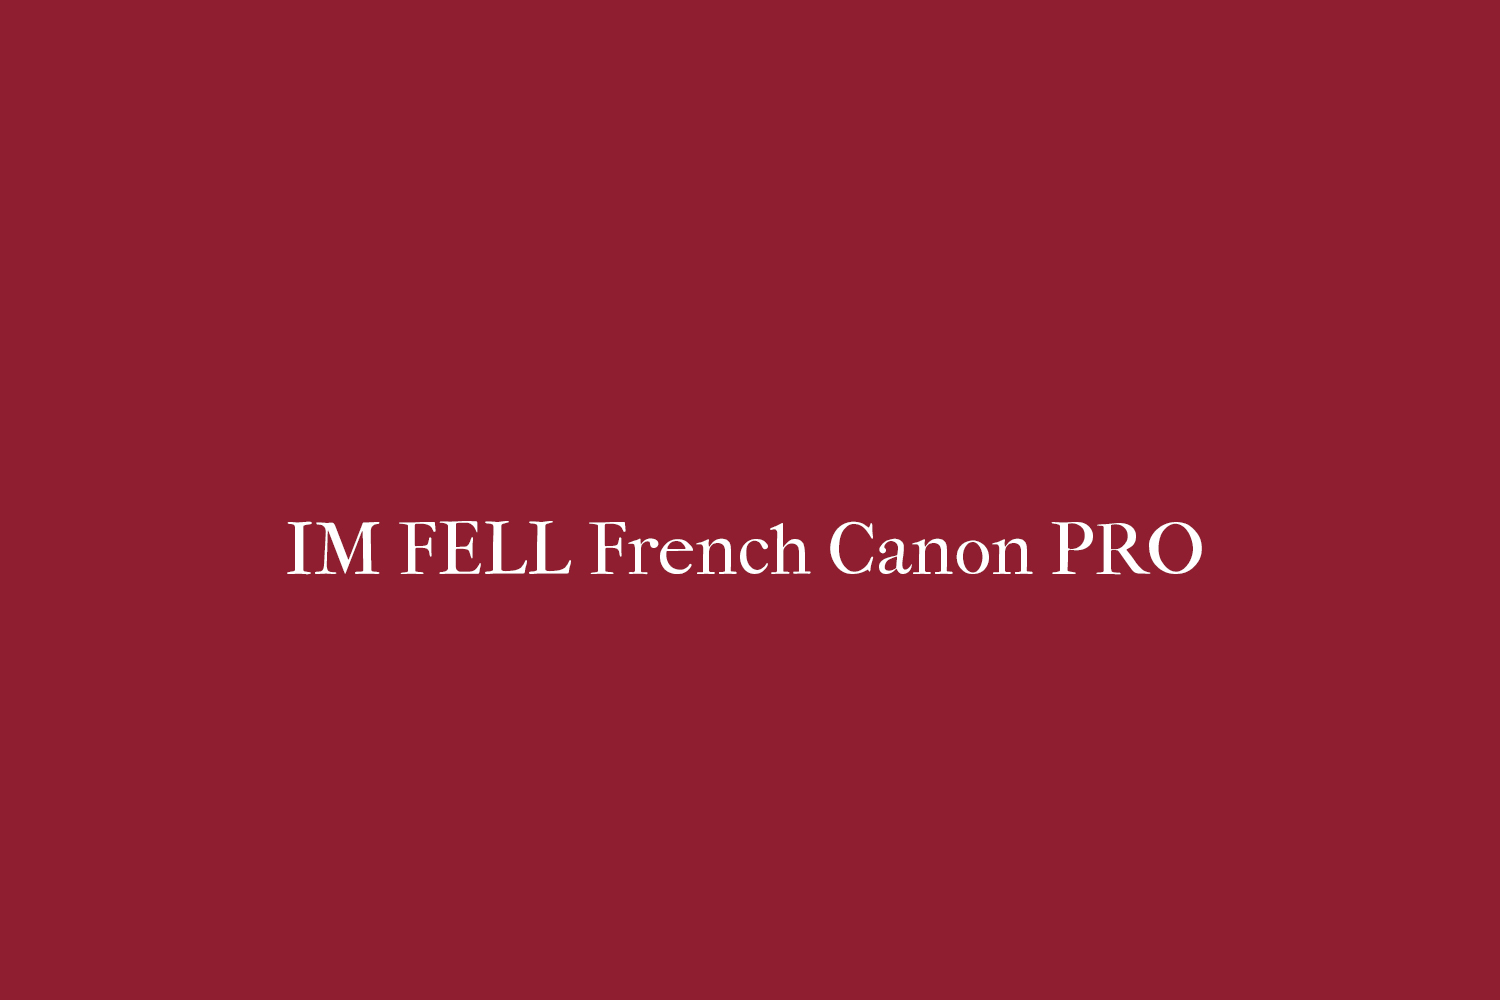 IM FELL French Canon PRO